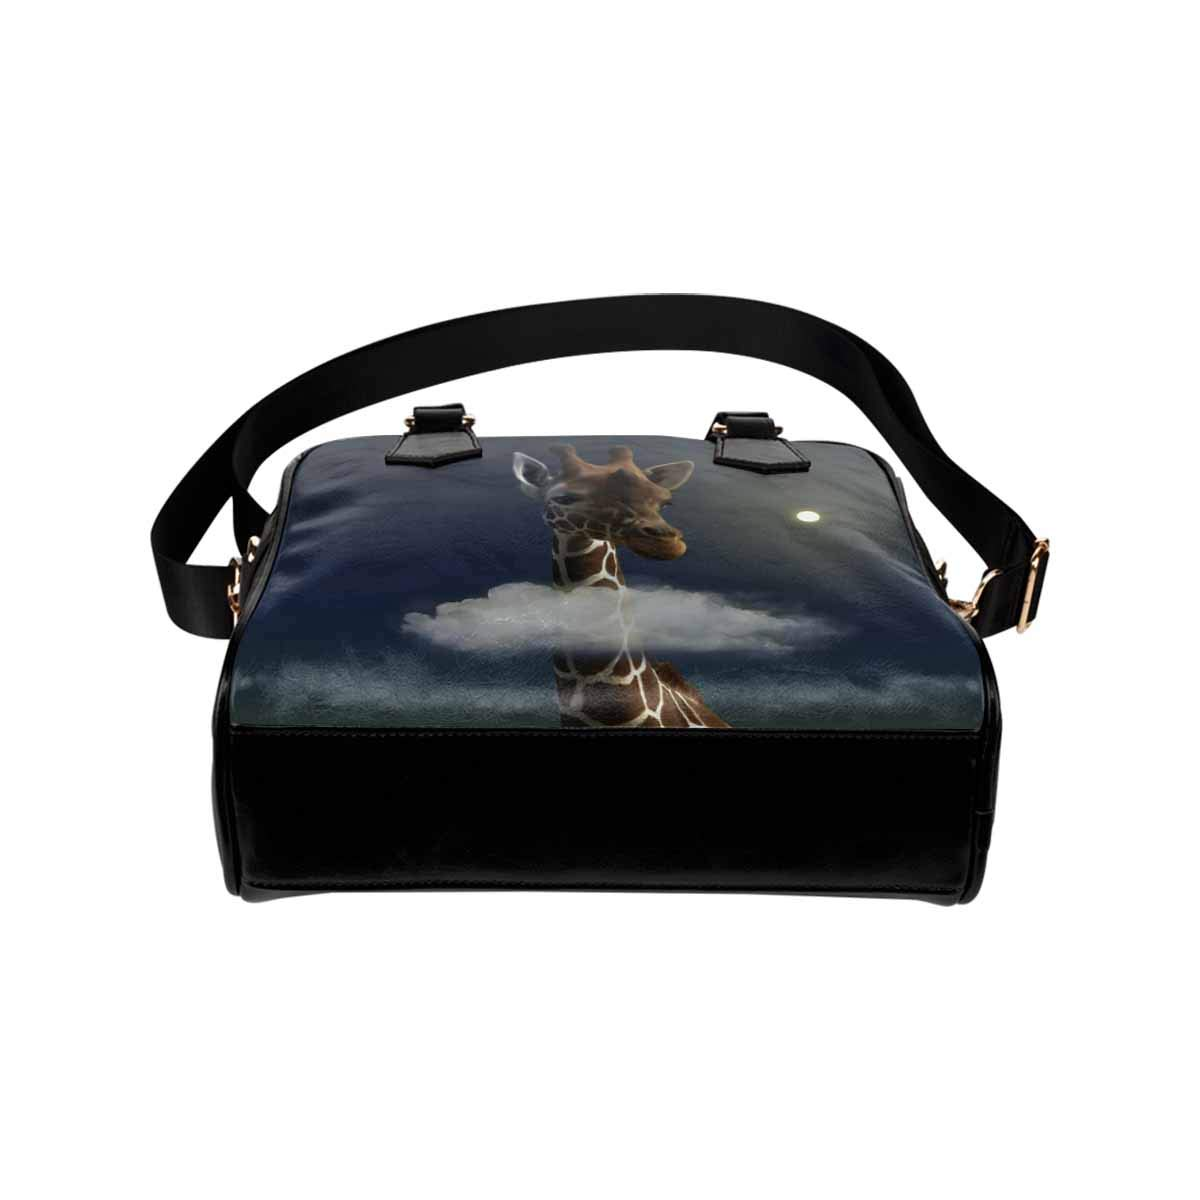 InterestPrint Beautiful Giraffe and a Fantsy Cloud in the Middle of Its Neck Womens Top Handle PU Leather Shoulder Satchel Bag